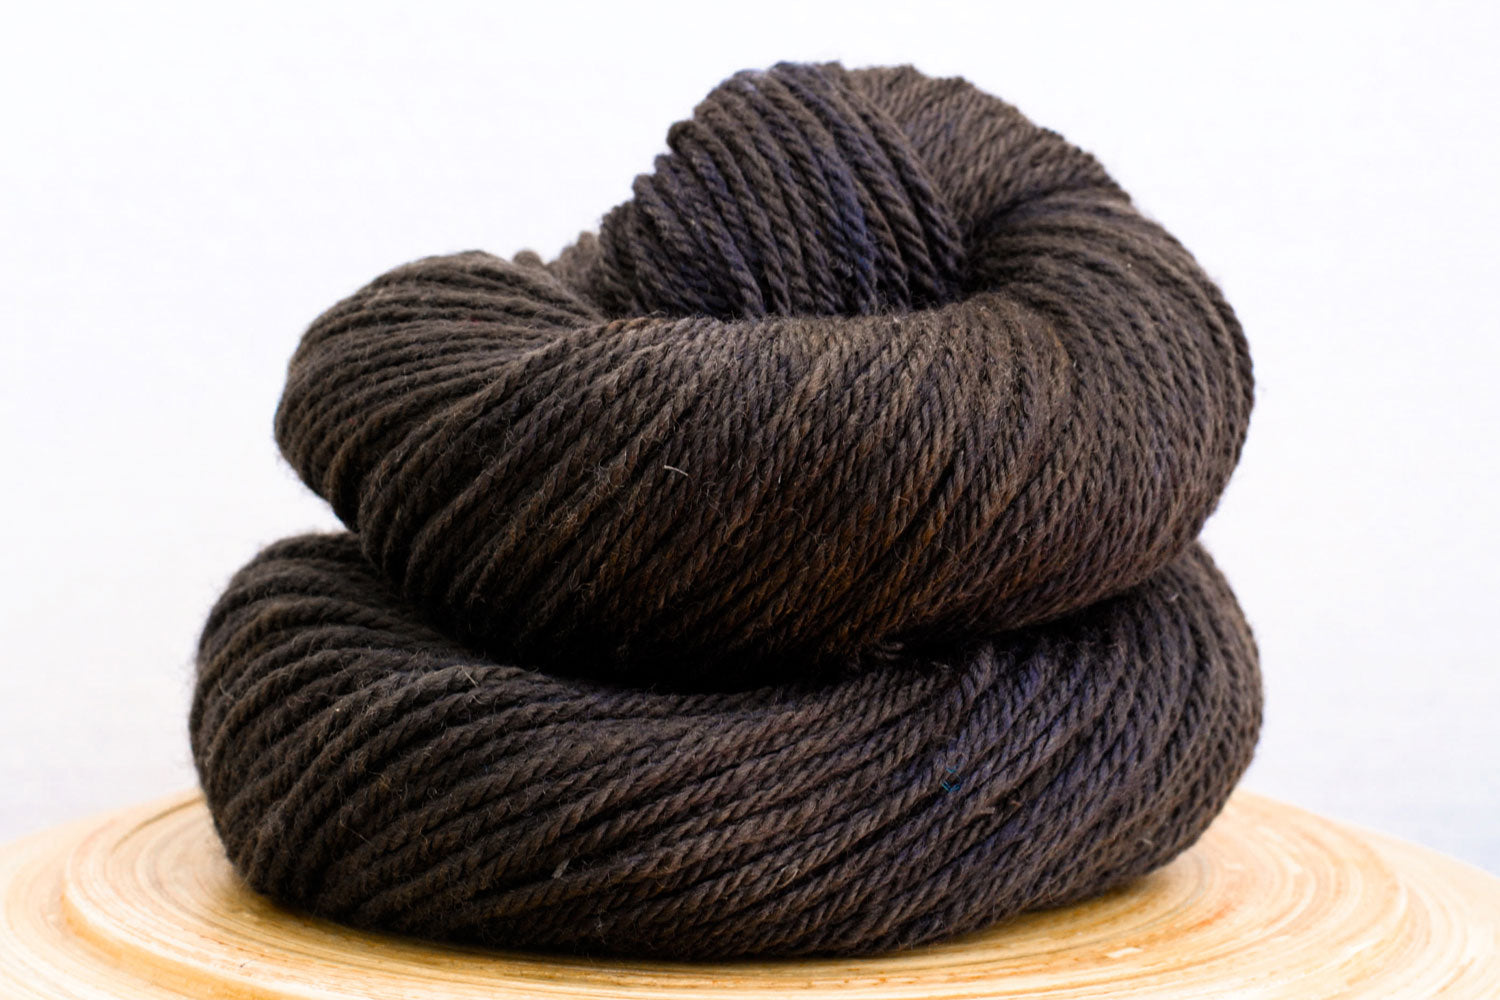 Mud Puddle - dark brown sem-solid hand-dyed DK weight wool